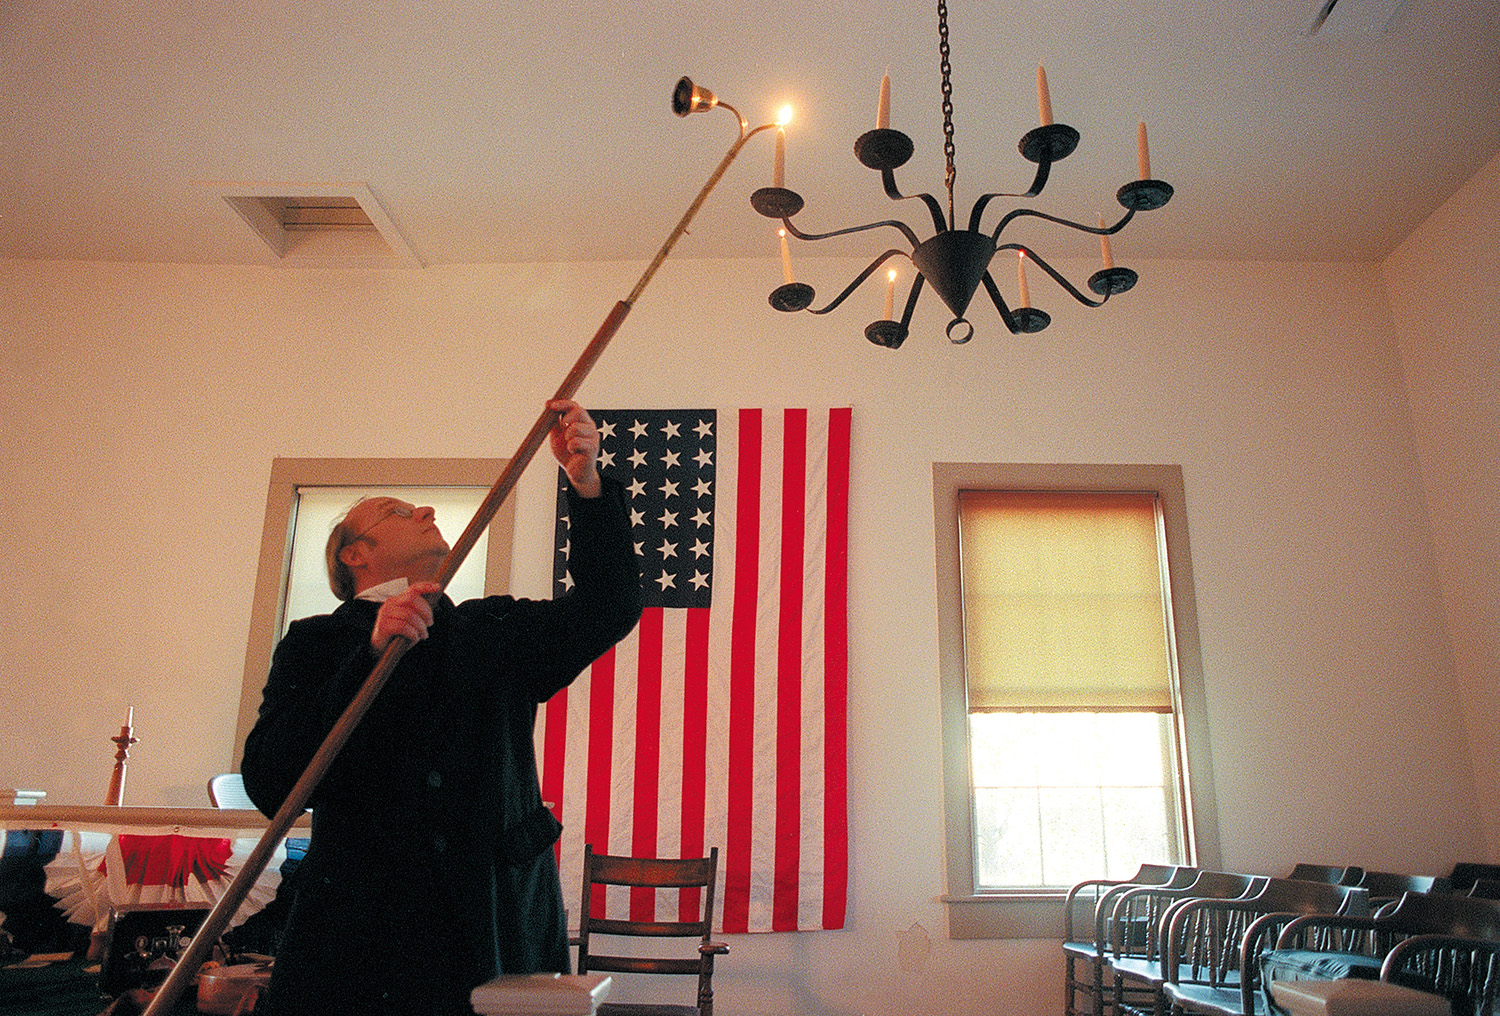 Robb Roper, a volunteer at the Mount Pulaski State Historic Site, lights candles during a open house and celebration of Lincoln's Birthday. Rich Saal/The State Journal-Register